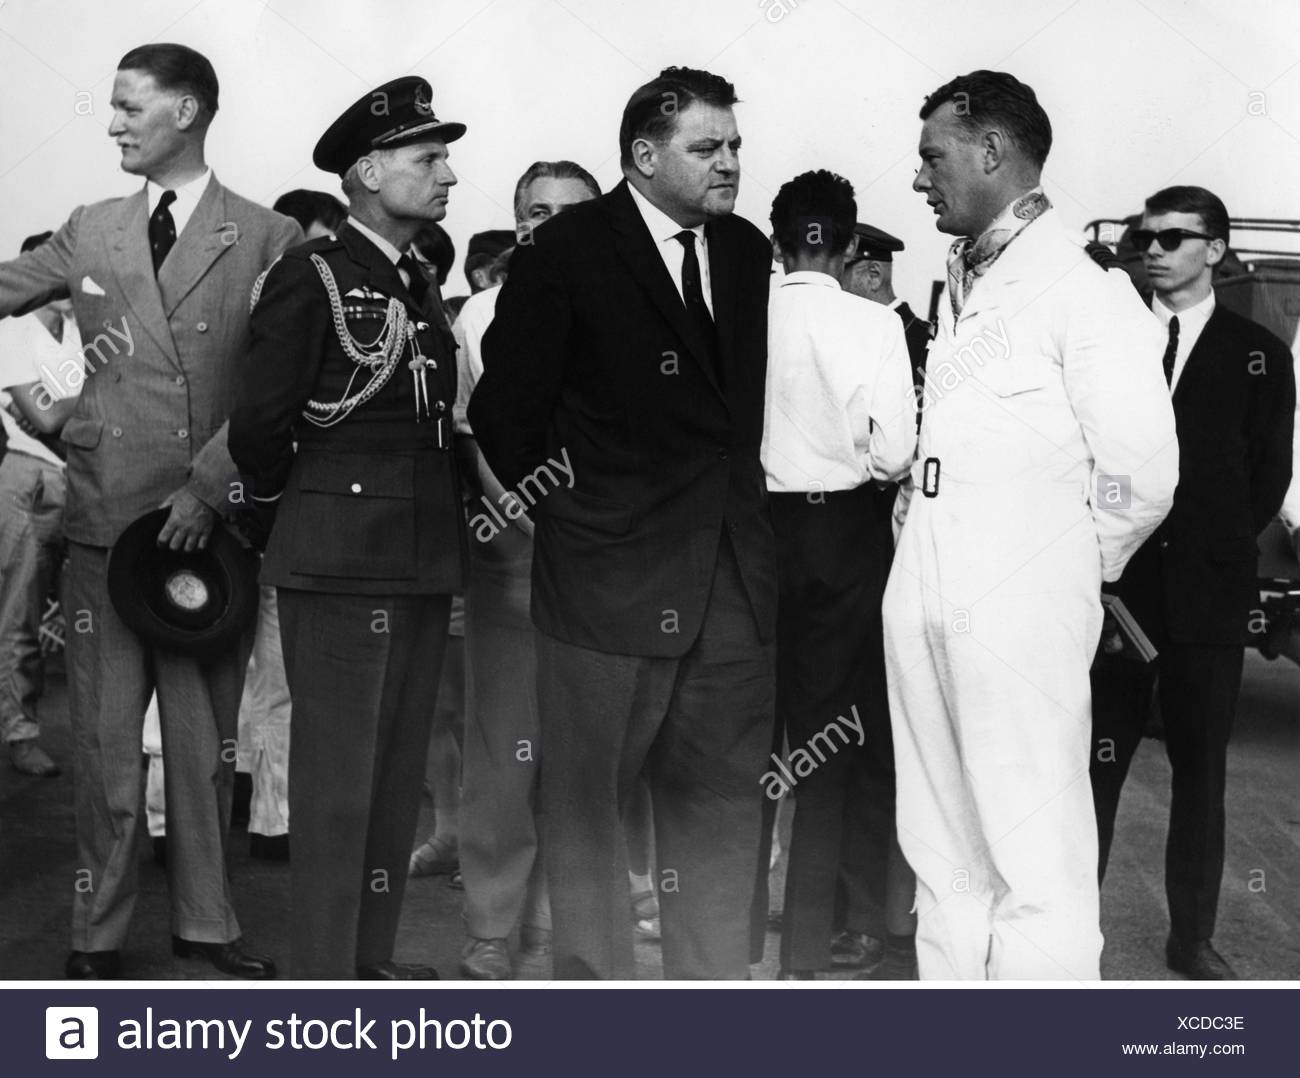 Strauss, Franz Josef, 6.9.1915 - 3.10.1988, German politician (CSU), Federal Minister of Defence 16.10.1956 - 9.1.1963, with the British consul general Aubrey Halford-McLeod, Royal Air force attache Tomes and squadron leader of the 'Blue Diamonds' Merler, international air show, Fuerstenfeldbruck, 24.9.1961, Additional-Rights-Clearances-NA - Stock Image